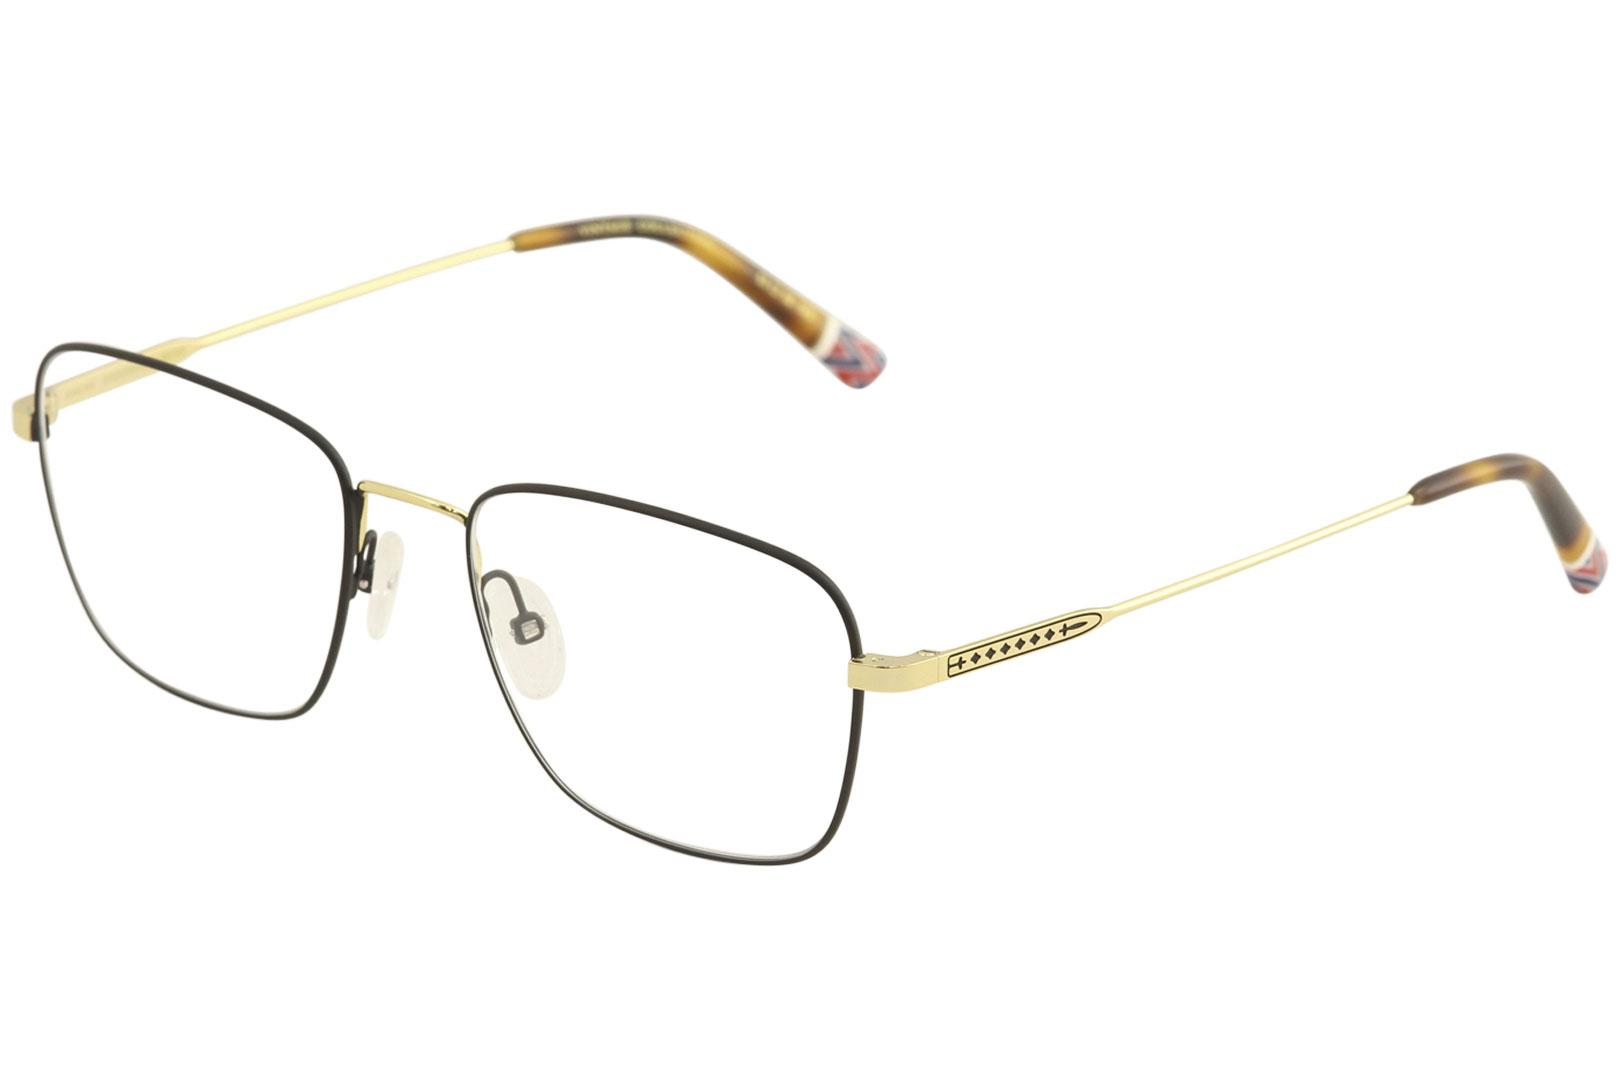 09c059d1d152 Etnia Barcelona Men's Eyeglasses Vintage Collection Sodermalm Optical Frame  by Etnia Barcelona